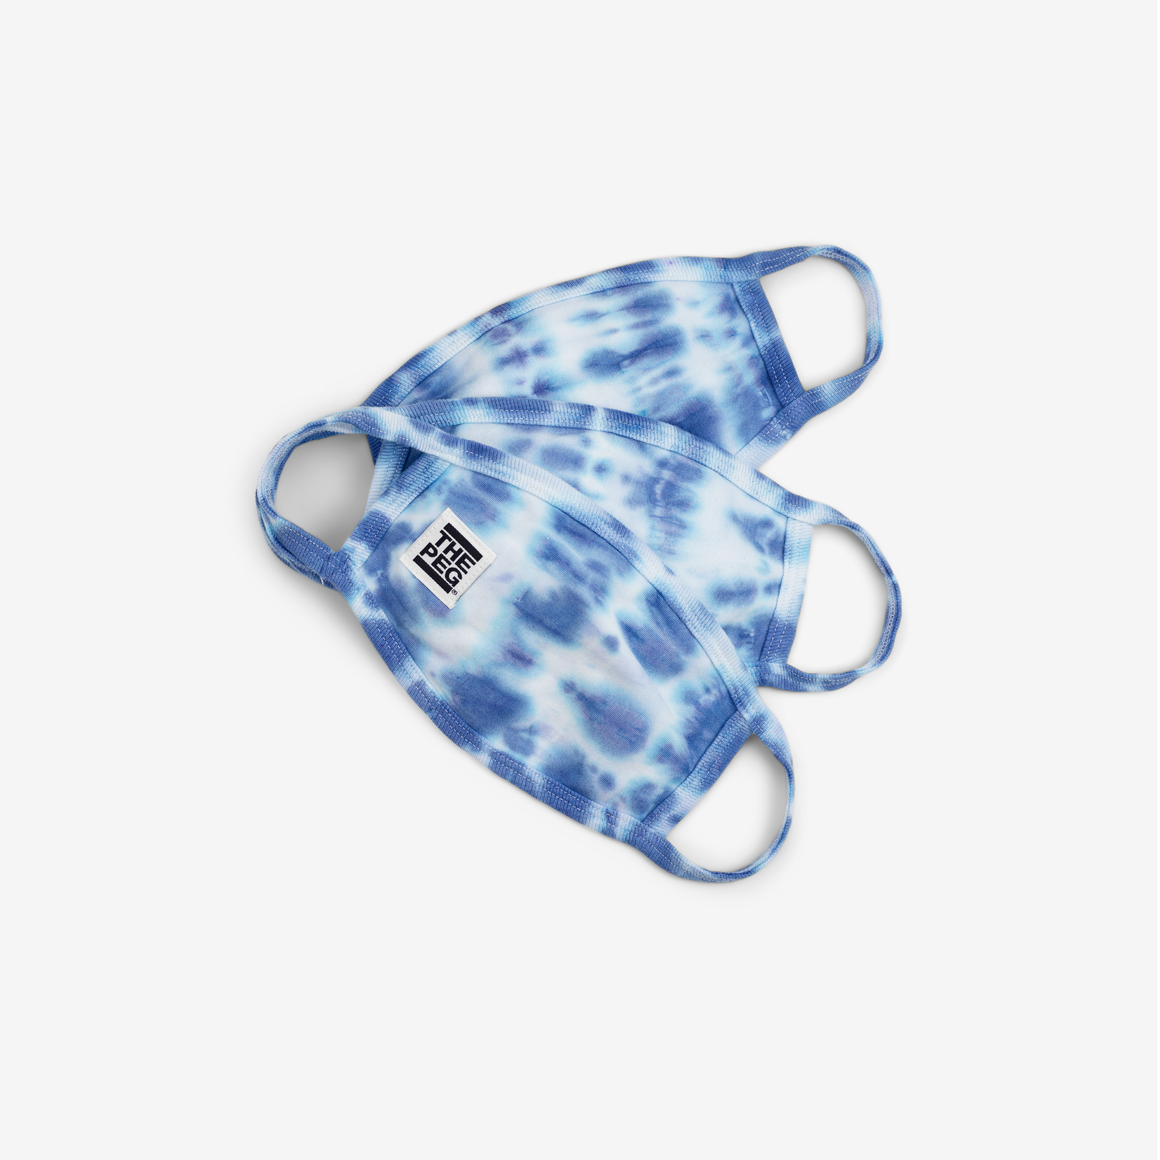 Reusable Face Mask (Indigo Tie Dye)